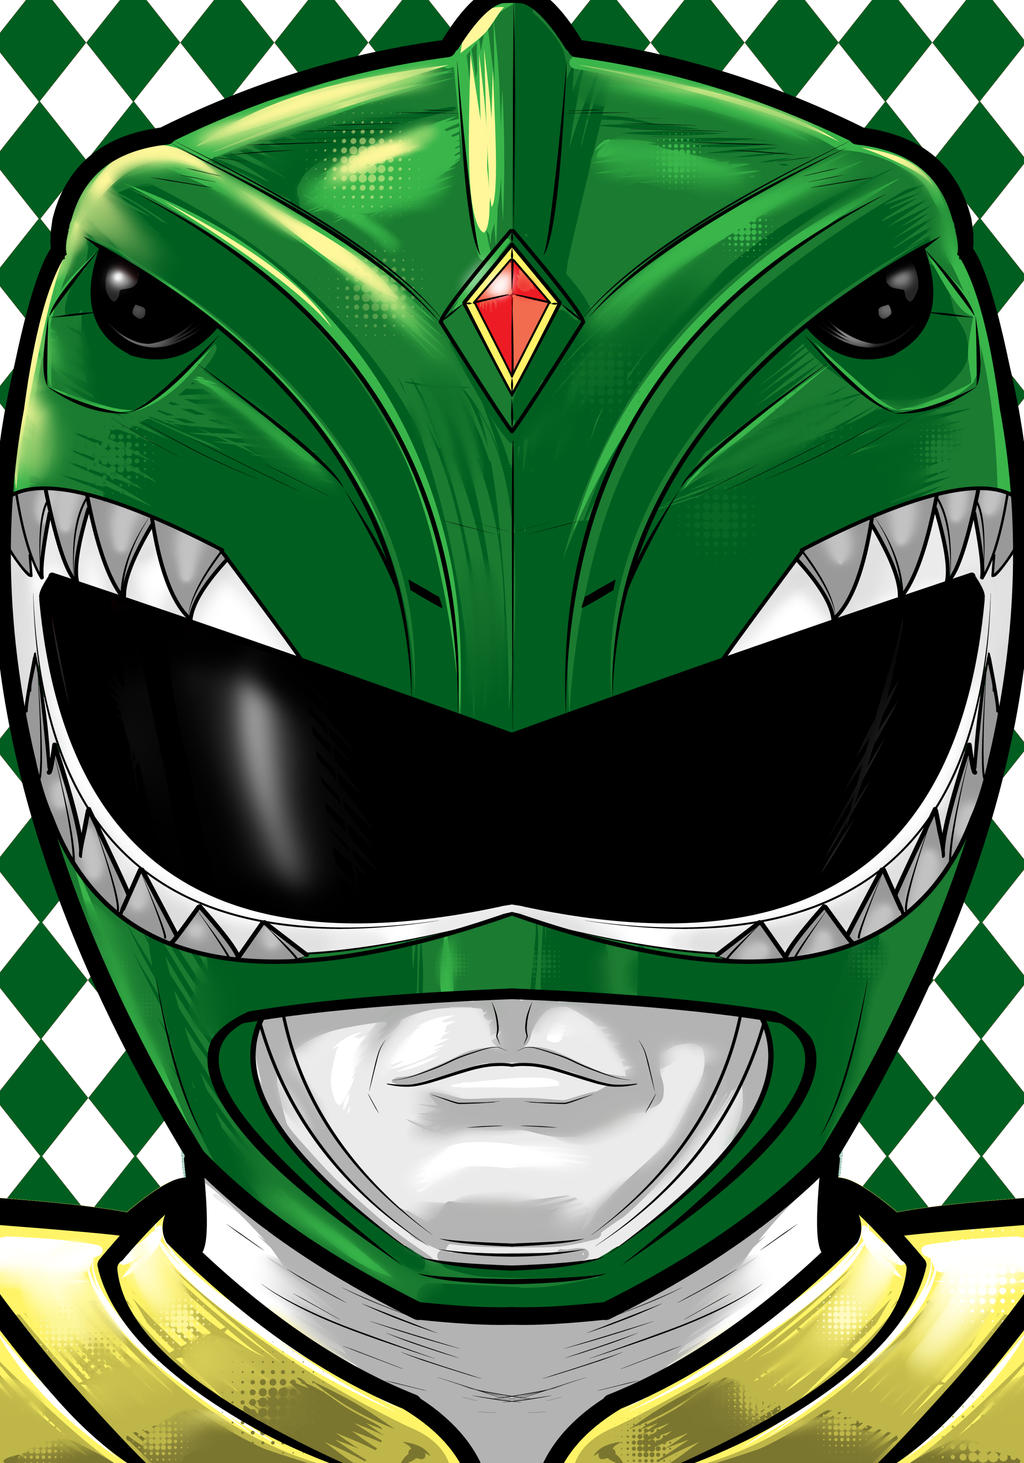 Green Ranger by Thuddleston